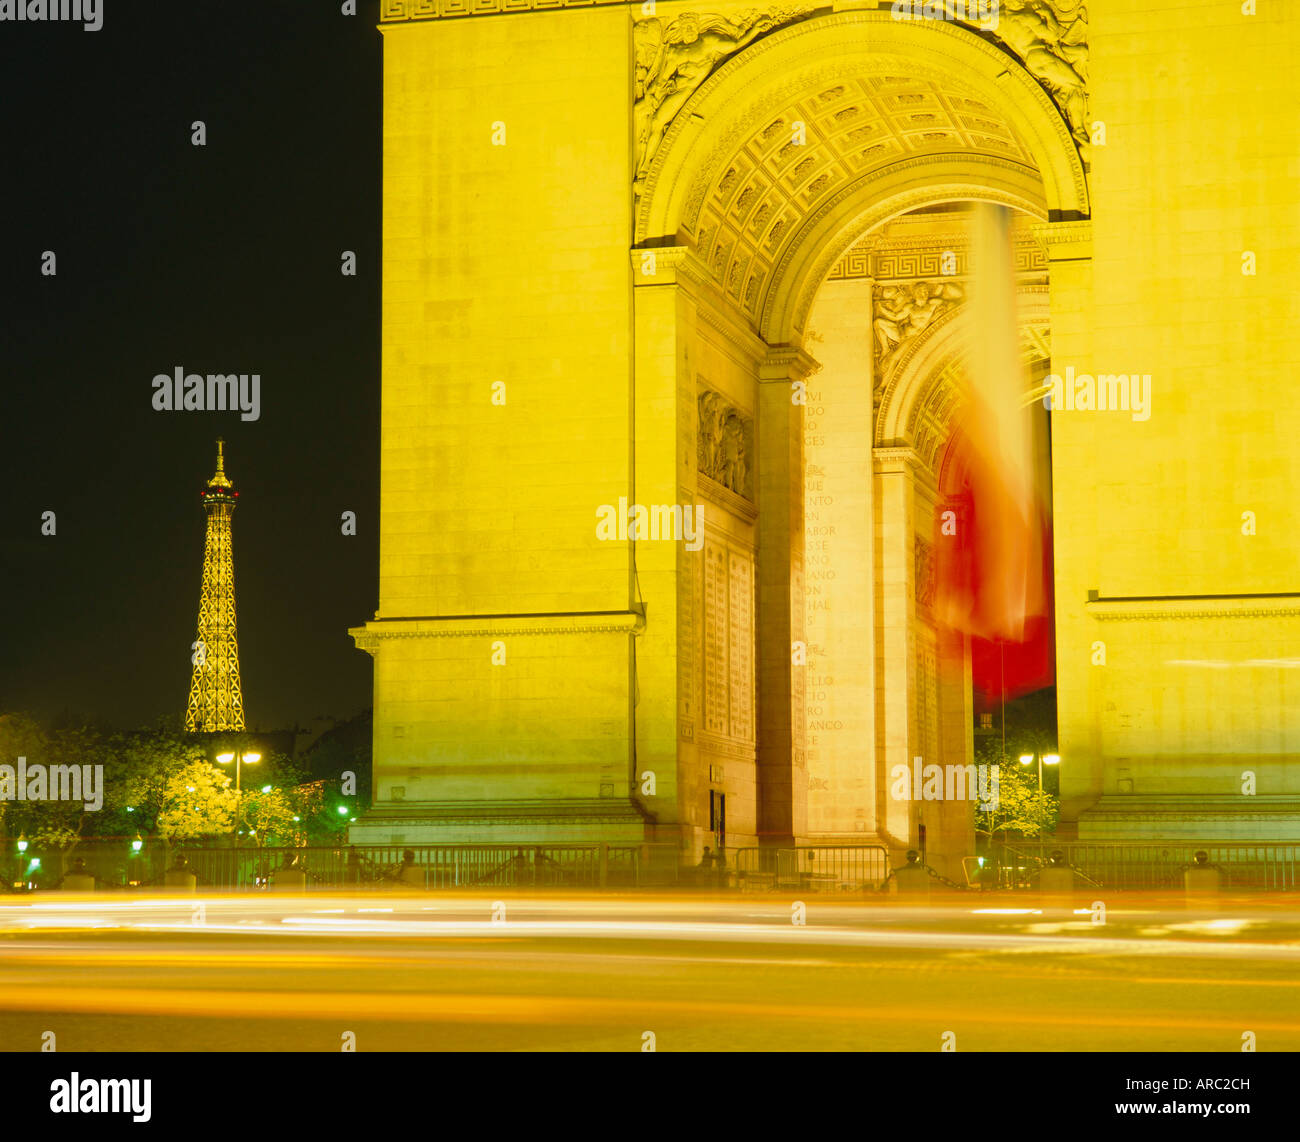 Arc de Triomphe and Eiffel Tower at night, Paris, France, Europe - Stock Image